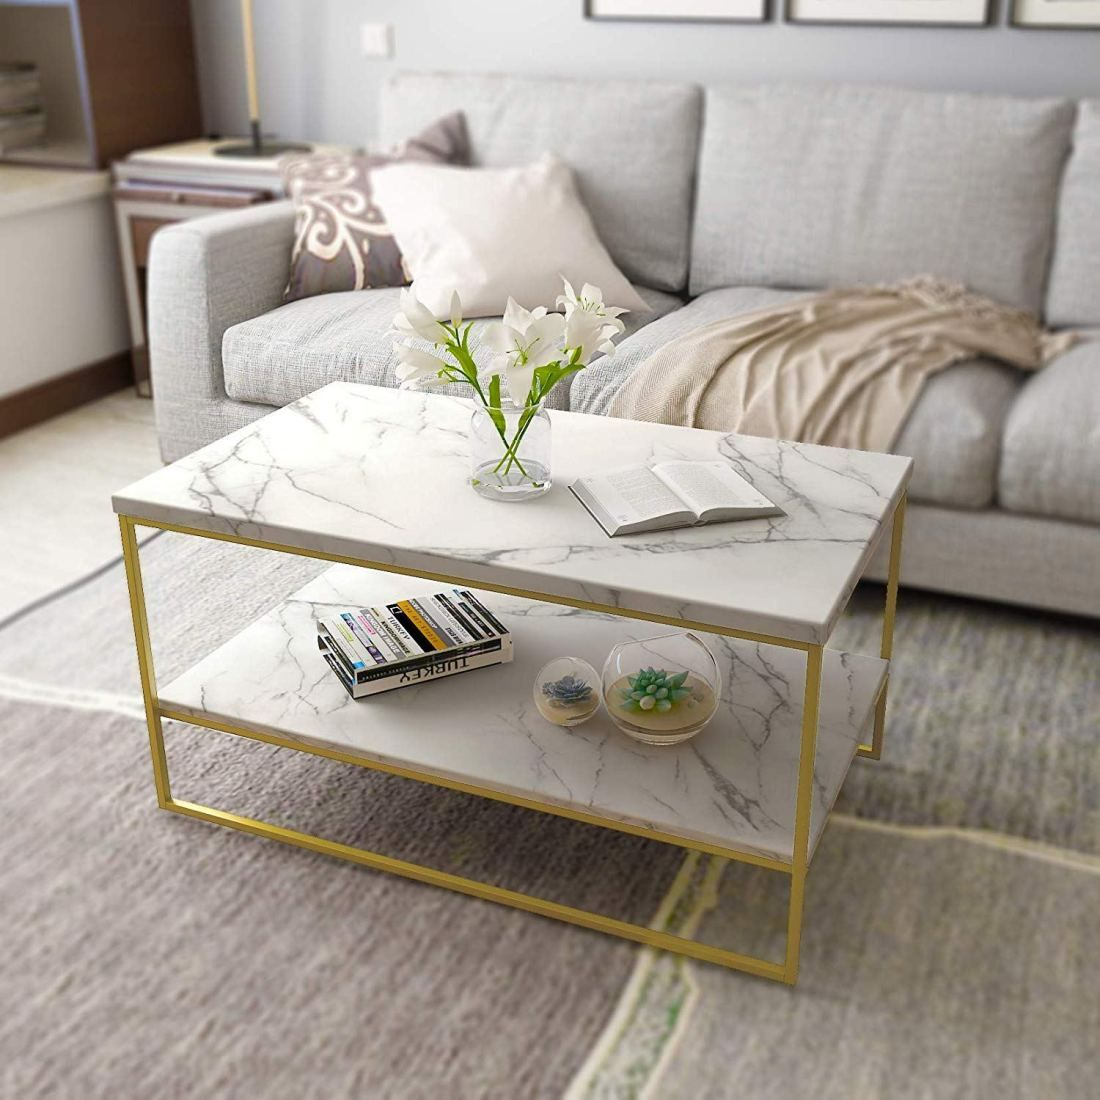 Budget Friendly Furniture That Is Perfect For Small Spaces City Chic Decor Marble Tables Living Room Marble Coffee Table Living Room Table